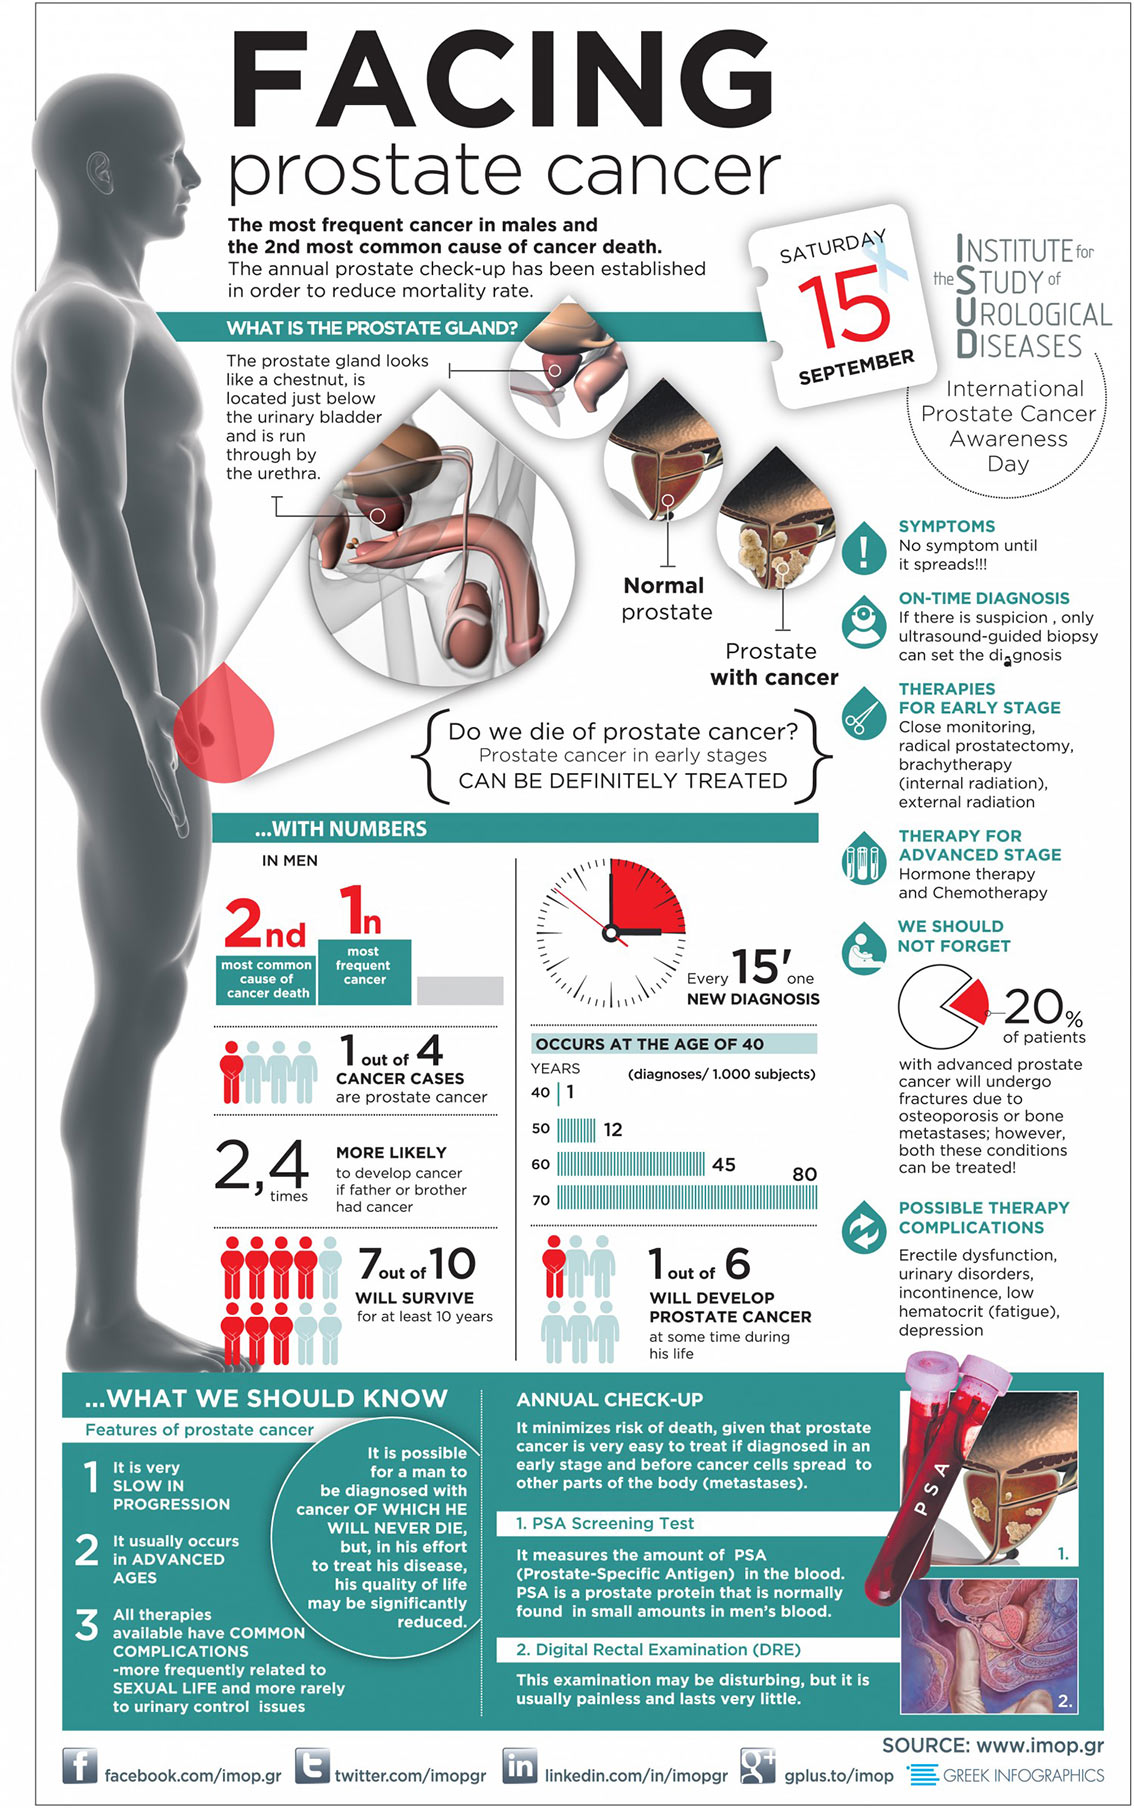 Prostate Cancer Facts and Statistics - Health Infographic